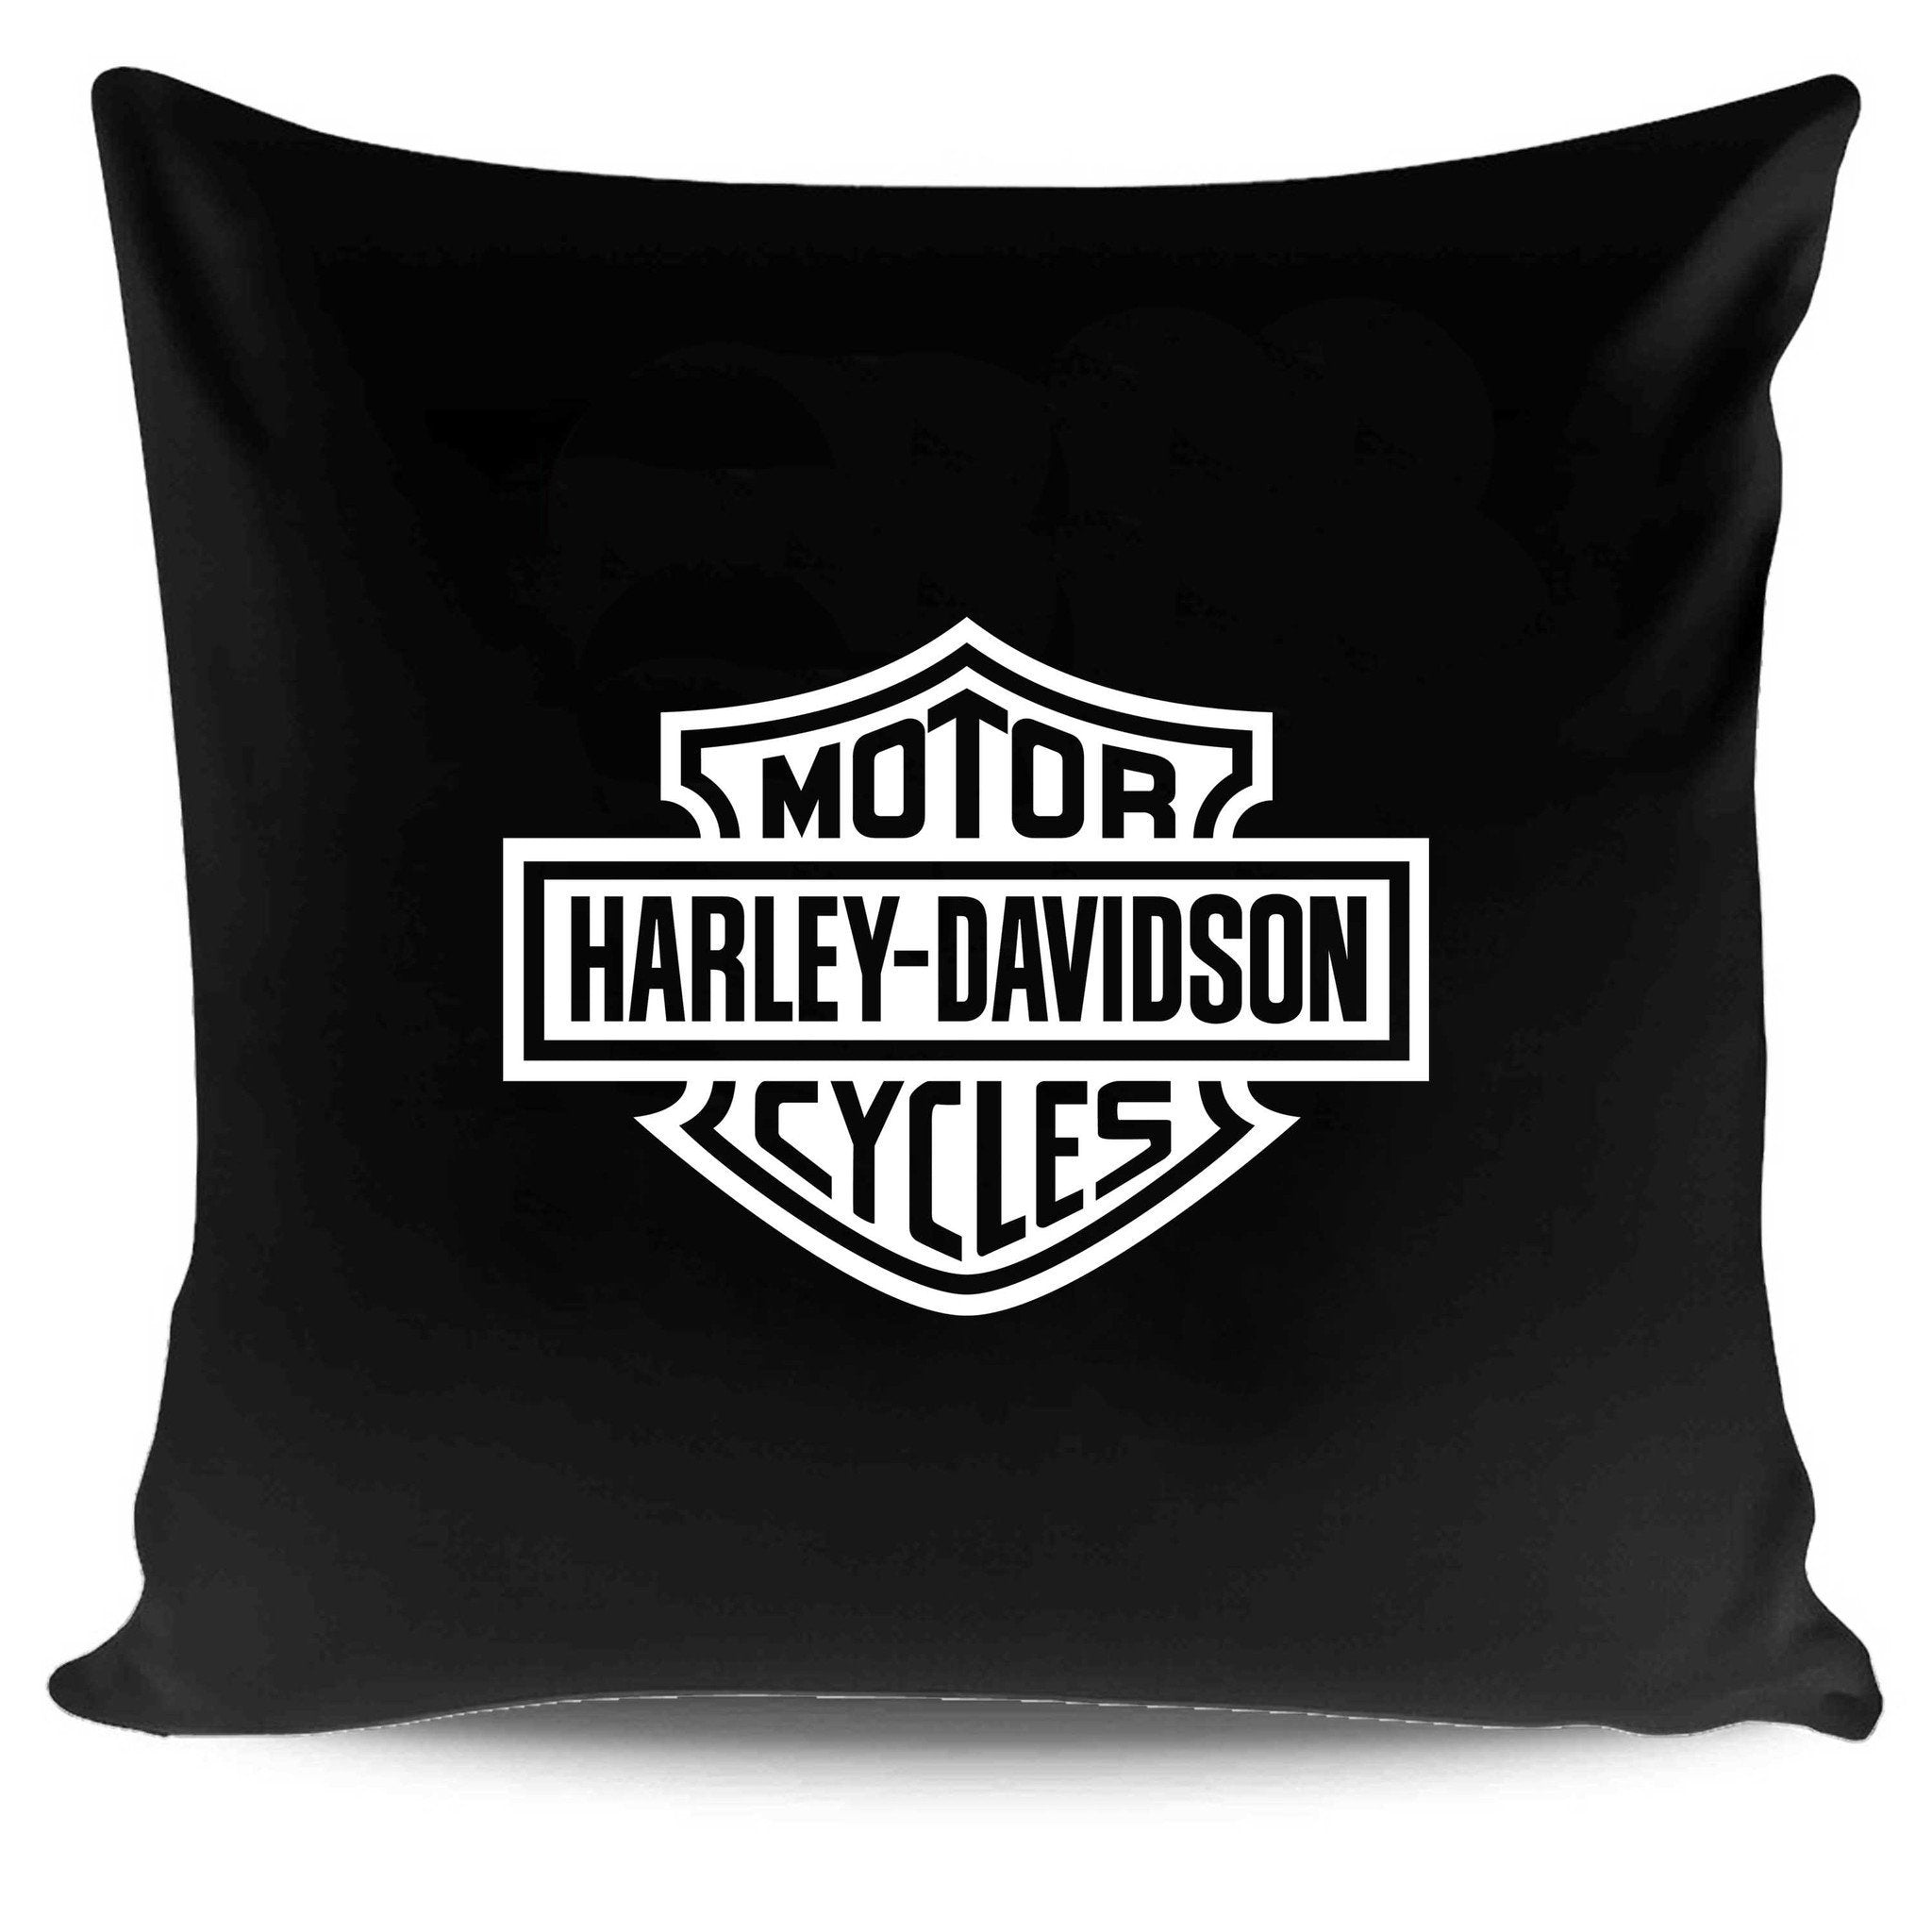 Harley Davidson Logo Vector Design Format For Cricut And Silhouette Pillow Case Cover